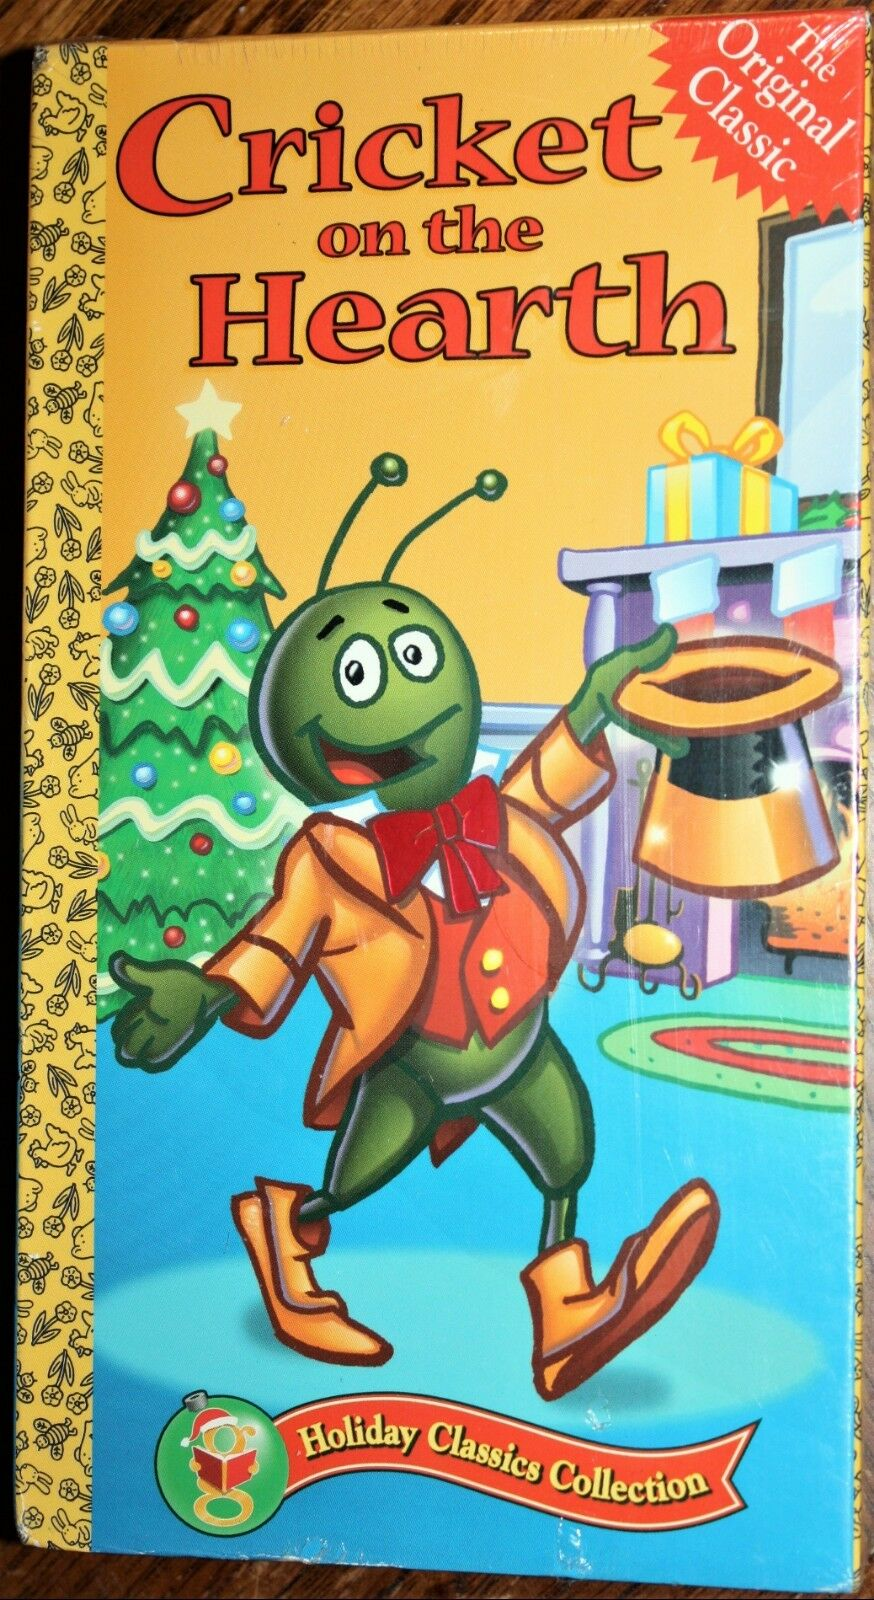 Cricket on the Hearth (Golden Books Family Entertainment)